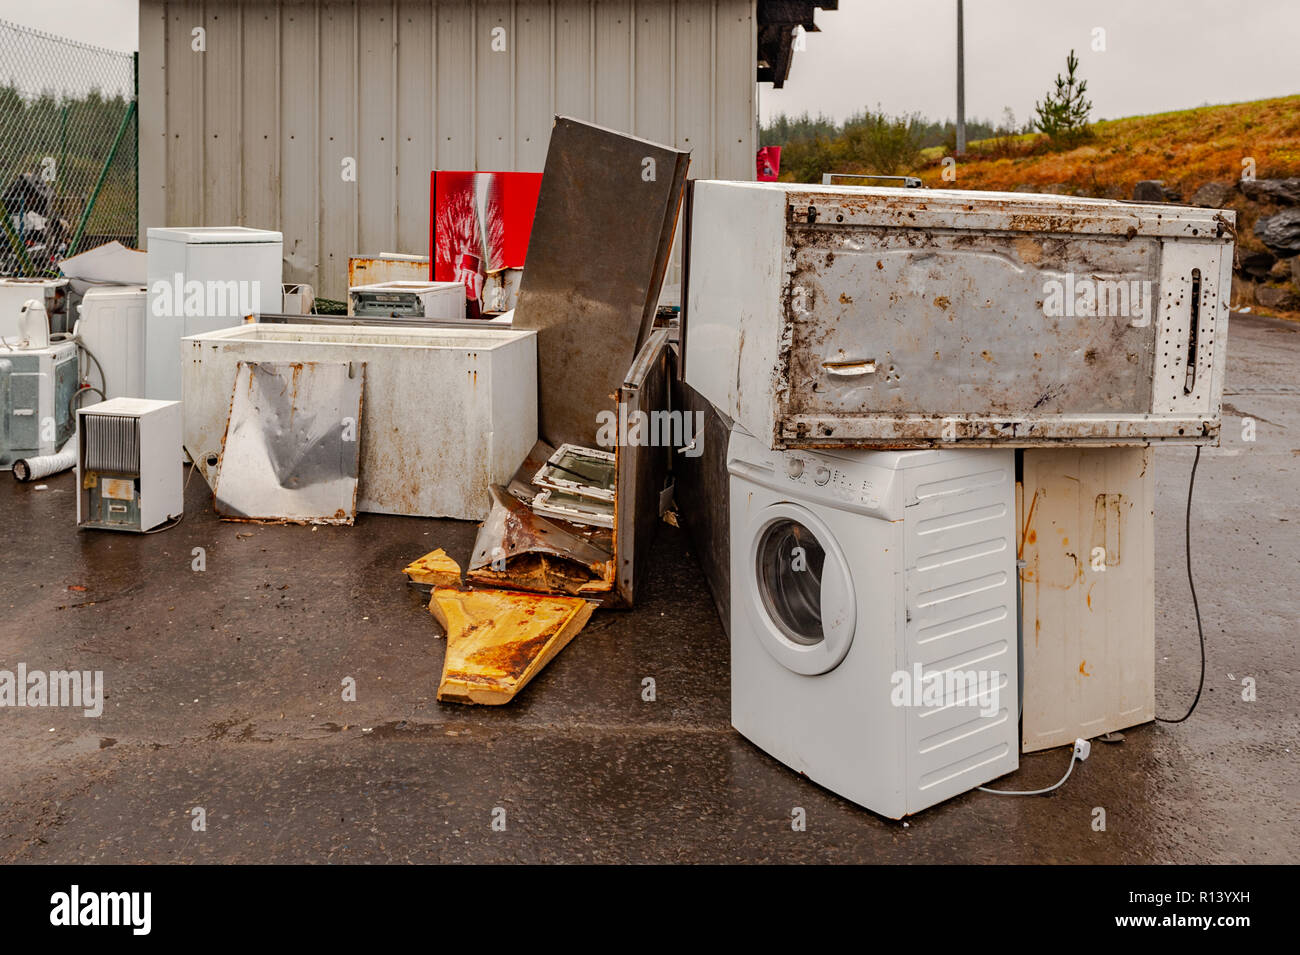 disposal-of-broken-or-old-electrical-white-goods-at-derryconnell-recycling-centre-ballydehob-west-cork-ireland-R13YXH.jpg